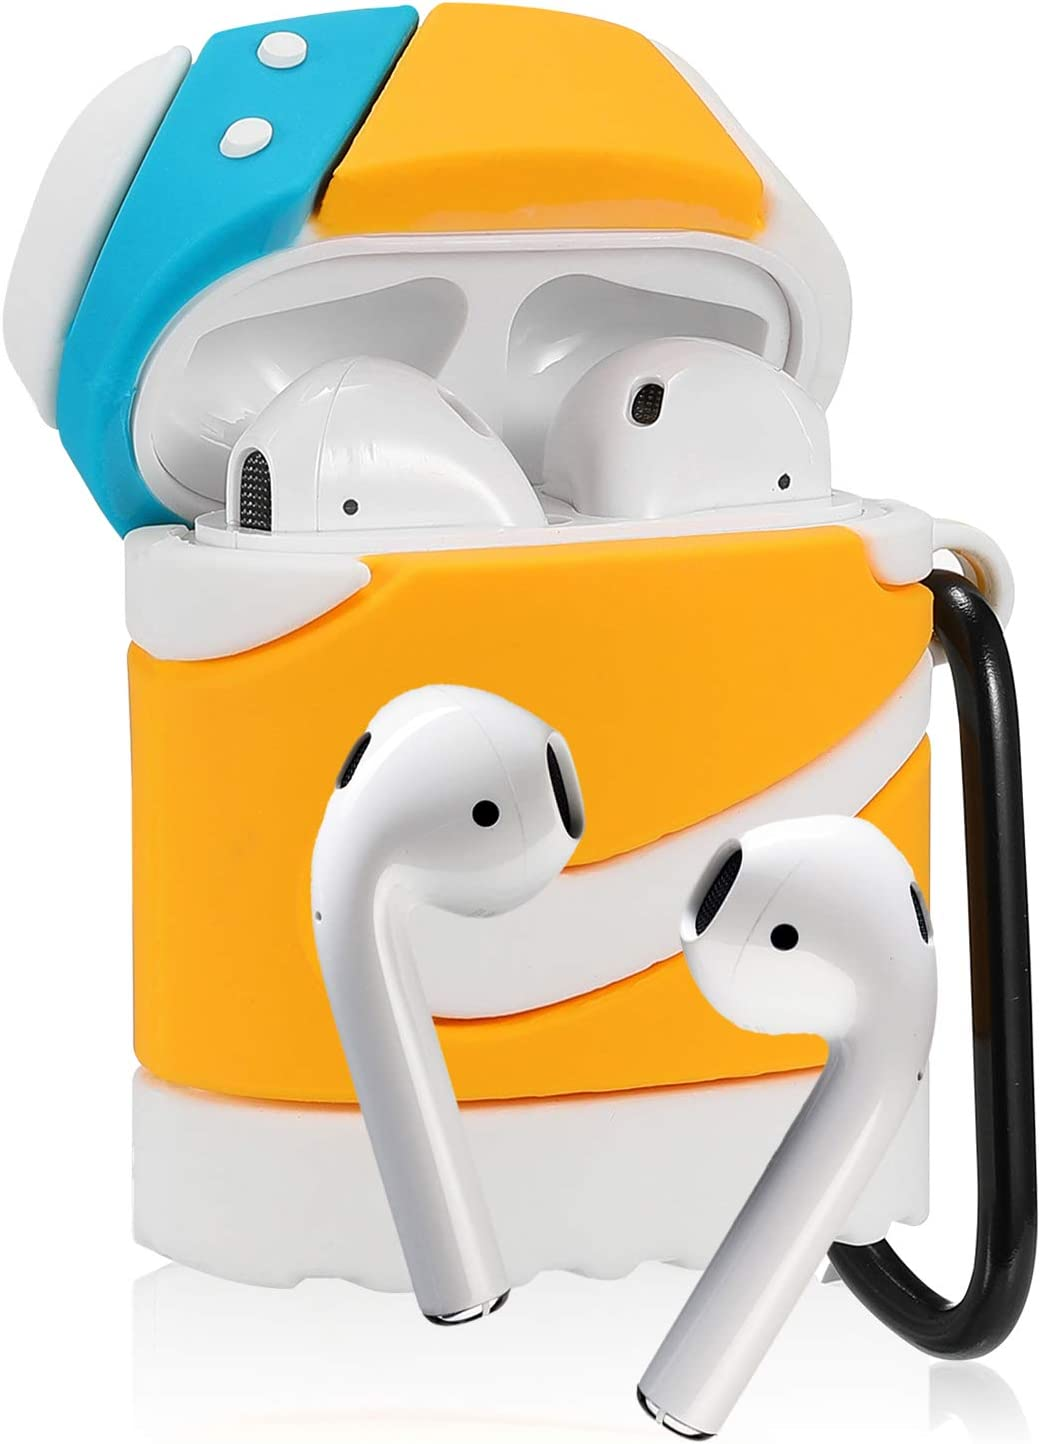 Cool Sport Stylish Fashion Soft Silicone Character Shockproof Airpod Skin Cases for Air pods 1/&2 Joyleop Yellow Shoes Case Compatible with Airpods 1//2 Cute Fun Funny 3D Kids Girls Teens Boys Cover